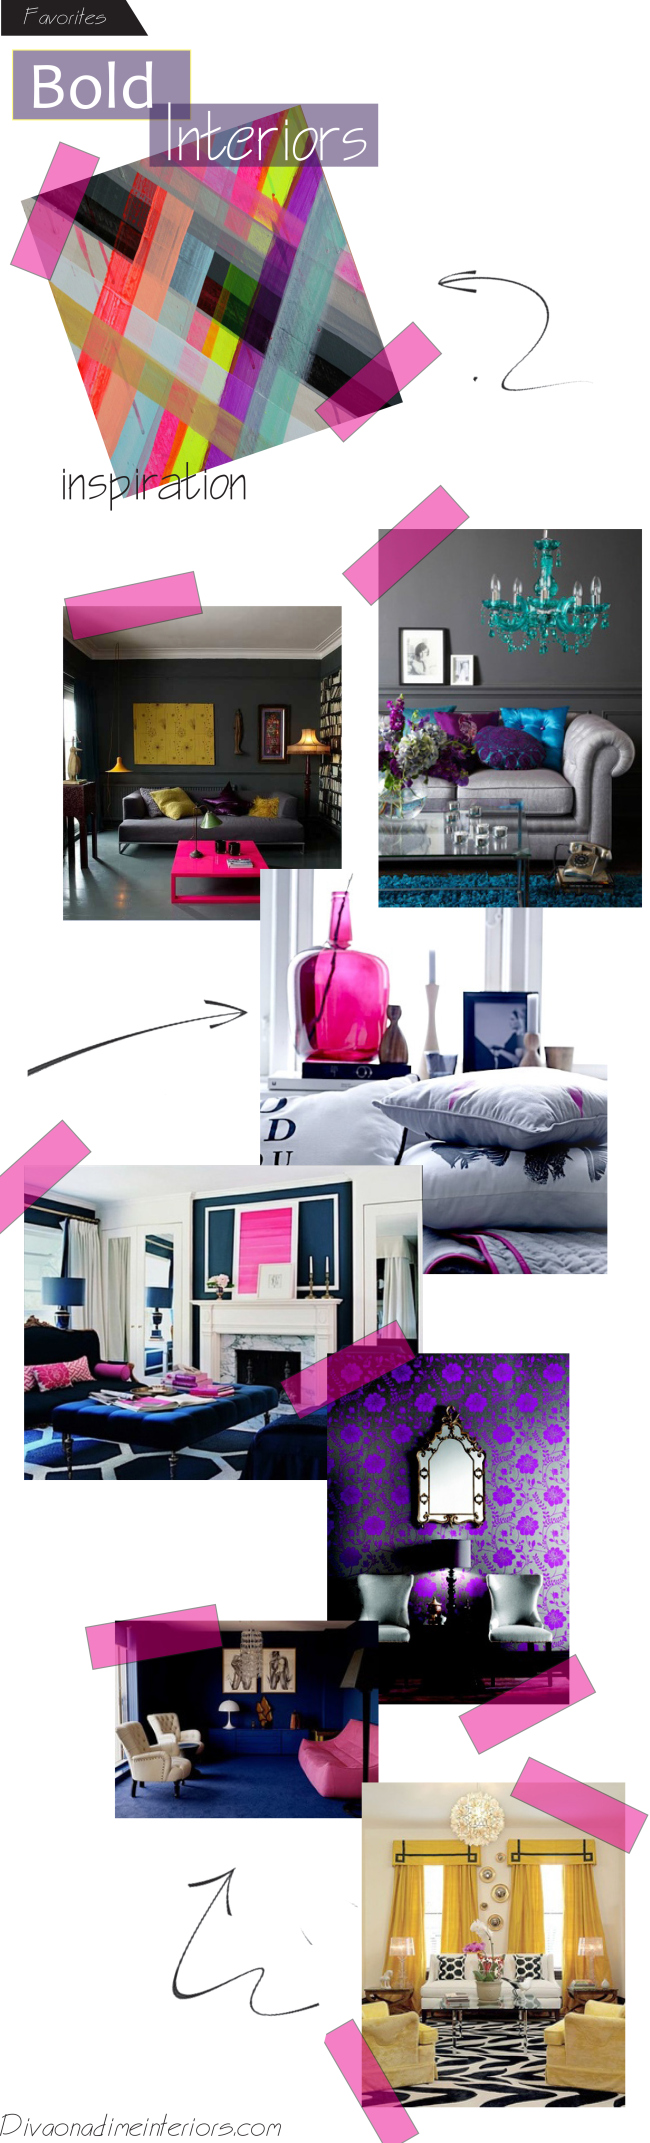 Wanted to give a shout-out to Diva on a Dime Interiors ...